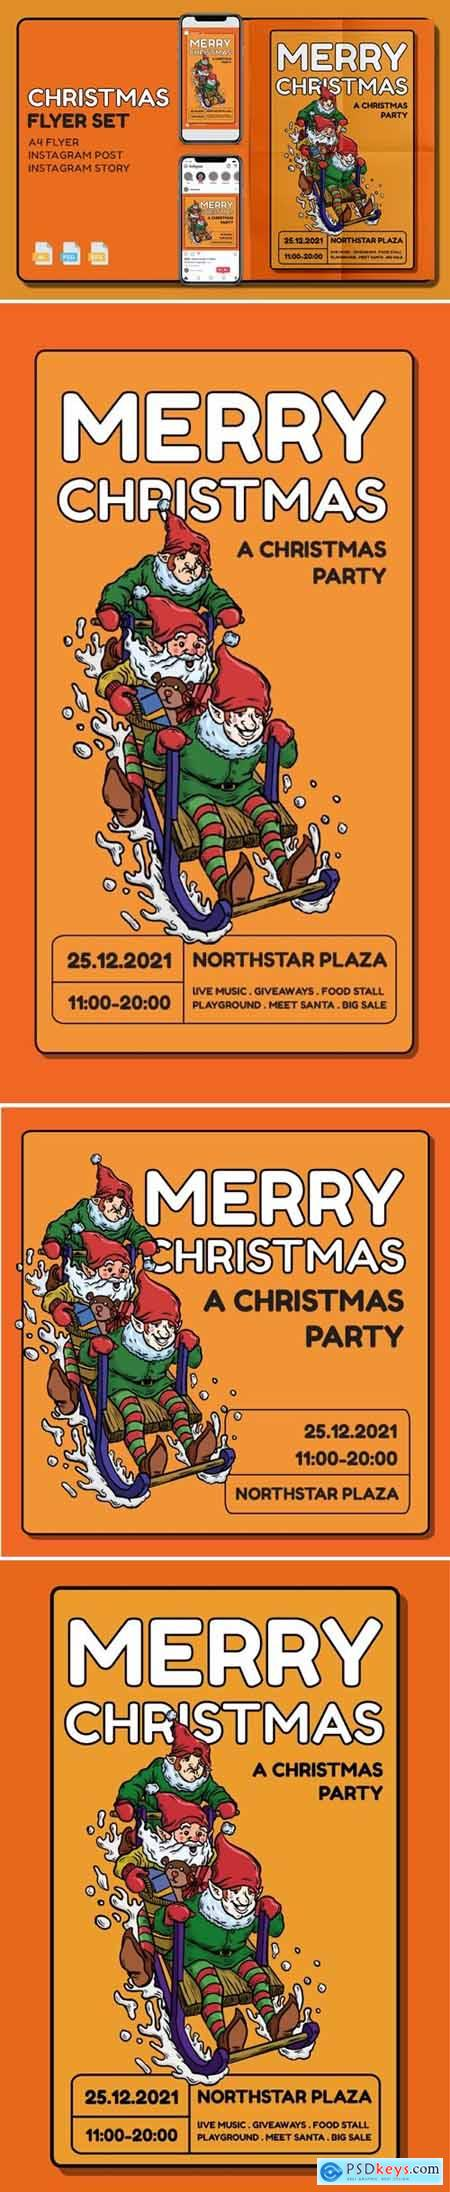 Christmass Flyer Set - Print and Social Media Pack FHE3JSS